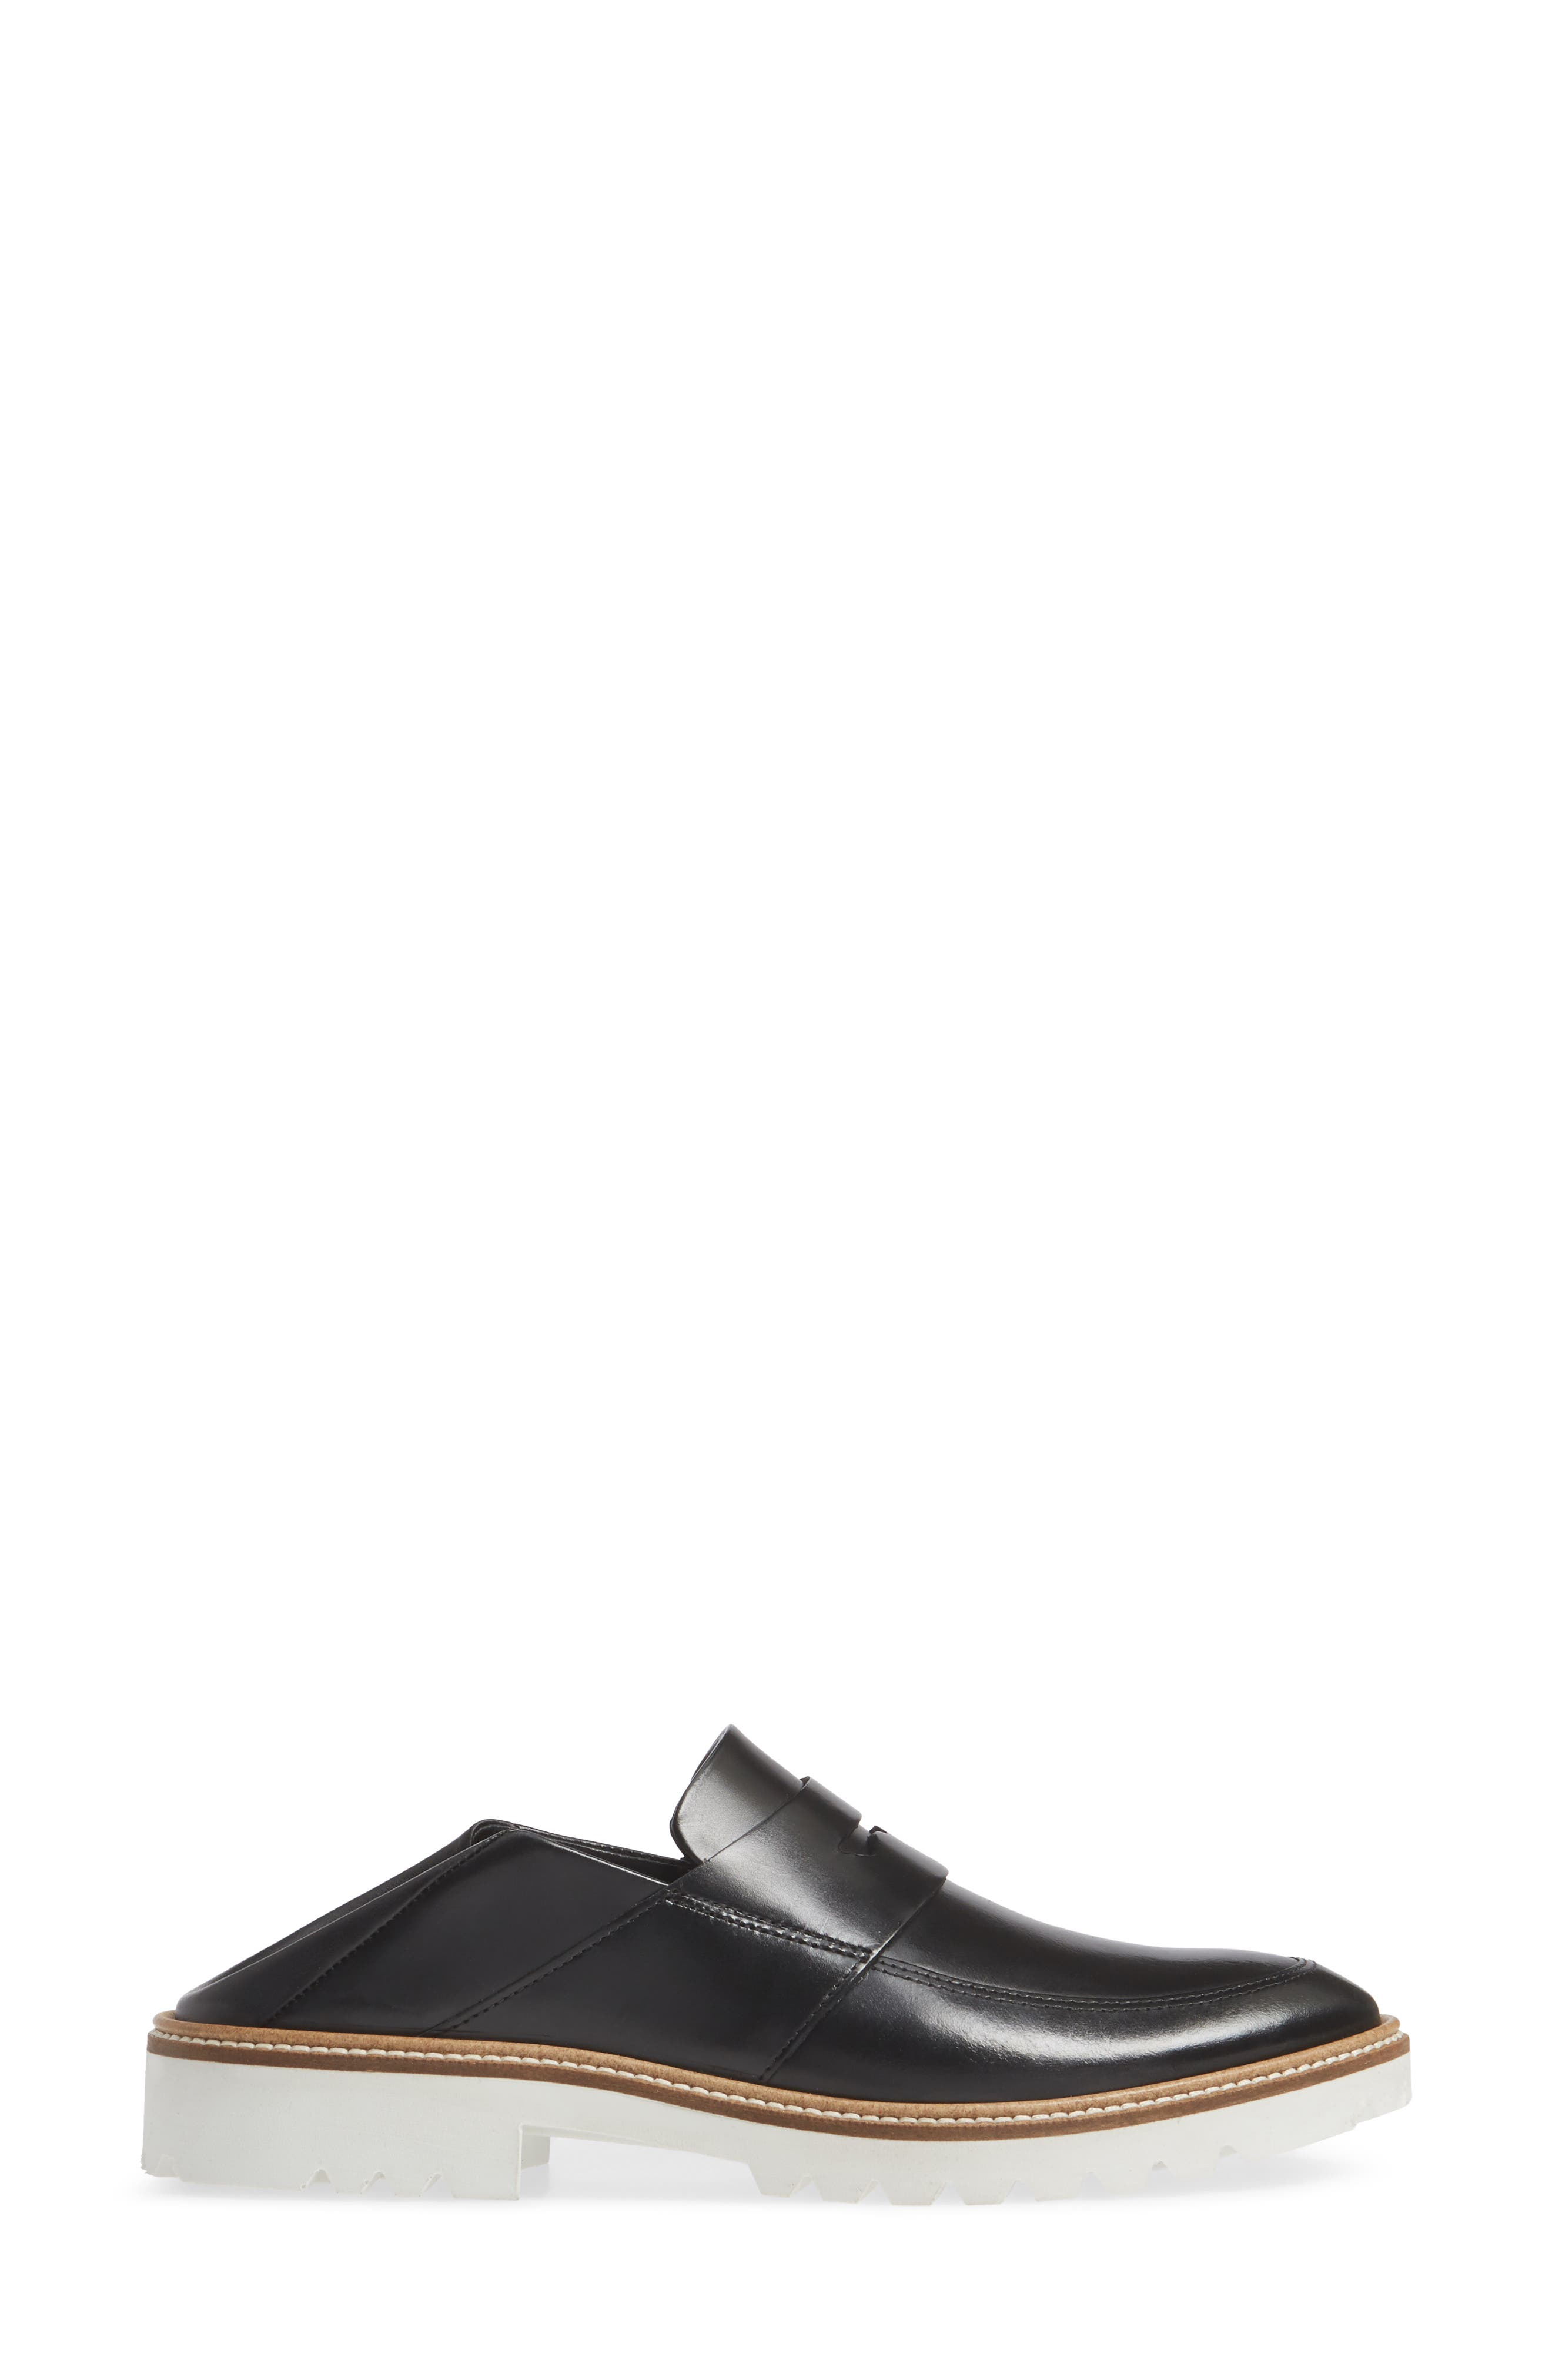 Incise Tailored Convertible Loafer,                             Alternate thumbnail 4, color,                             BLACK LEATHER